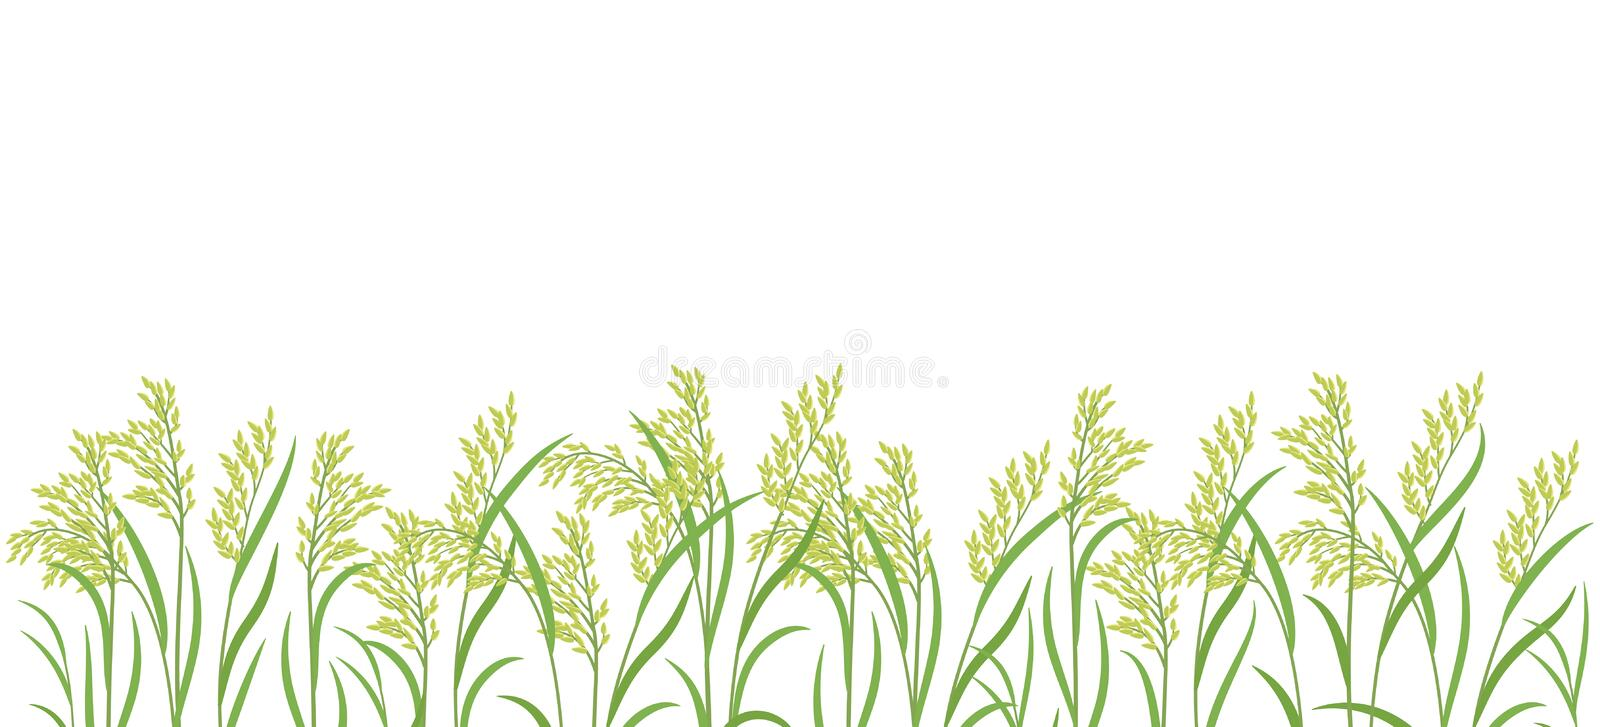 Rice plant green field. Horizontal banner. Oryza sativa. Cereal grain. Place for text. Copy space. Harvest vector. Agricultural. Vector background. Agronomy royalty free illustration